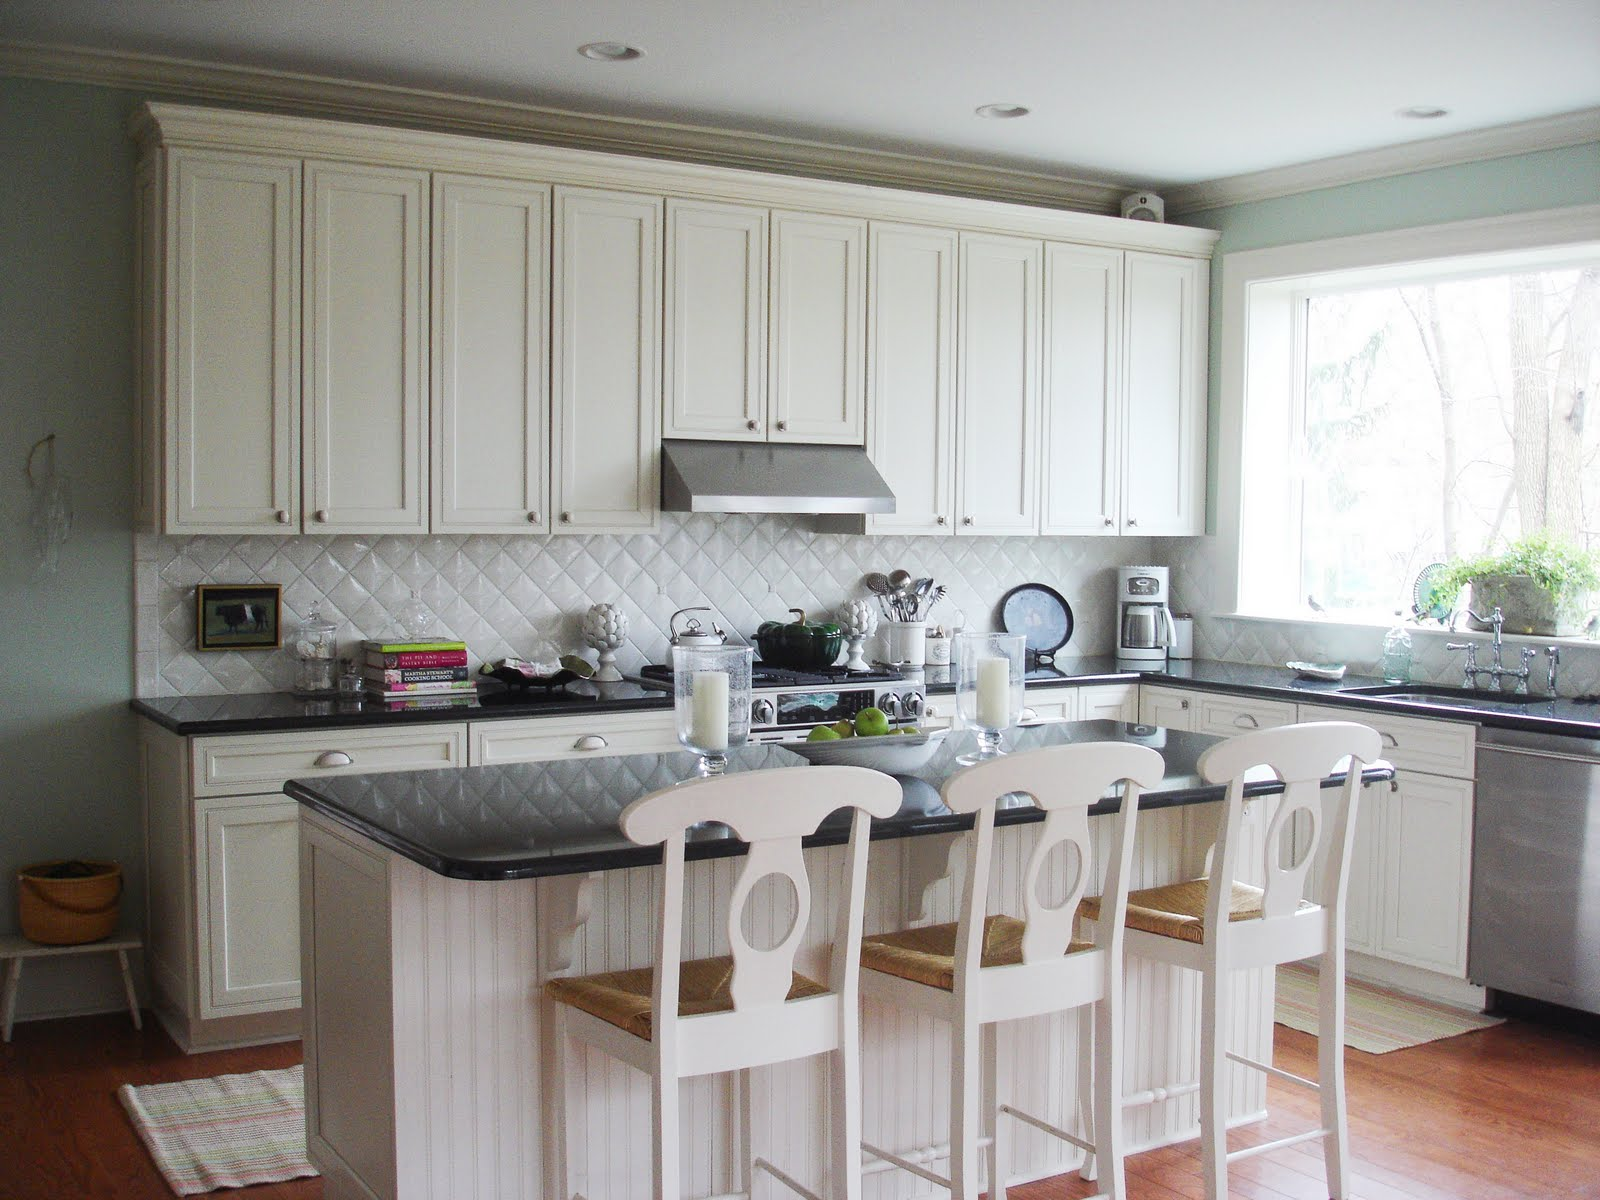 Leslie%2Bkitchen Ideas For Decorating Above Kitchen Cabinets Italian on wasted space above kitchen cabinets, interior decorating above kitchen cabinets, decorating tips above kitchen cabinets,